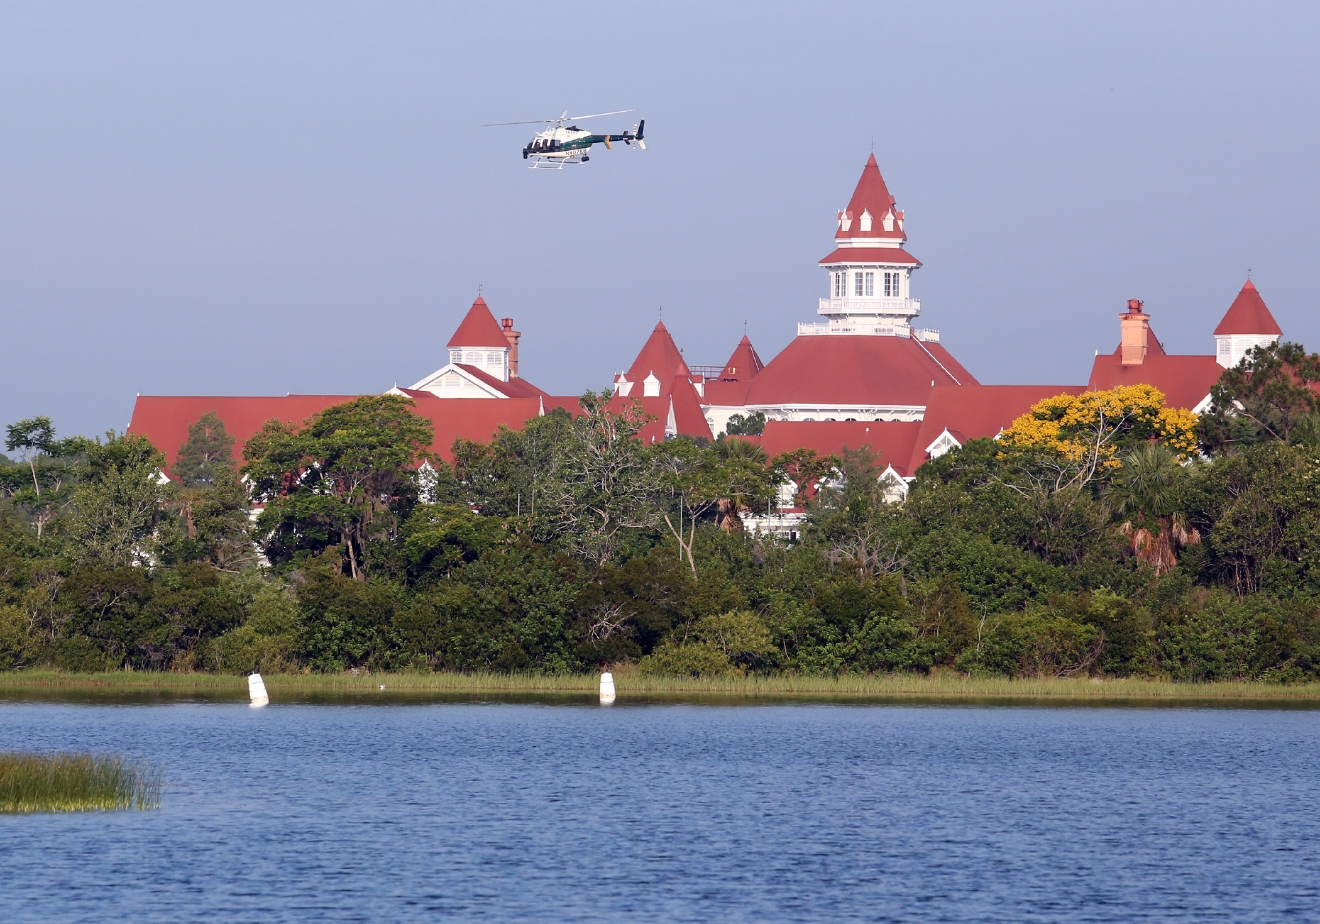 An Orange County Sheriffs helicopter searches for a young boy early Wednesday, June 15, 2016, after the boy was dragged into the water Tuesday night by an alligator near Disney's upscale Grand Floridian Resort & Spa in Lake Buena Vista, Fla. (Red Huber/Orlando Sentinel via AP) MAGS OUT; NO SALES; MANDATORY CREDIT